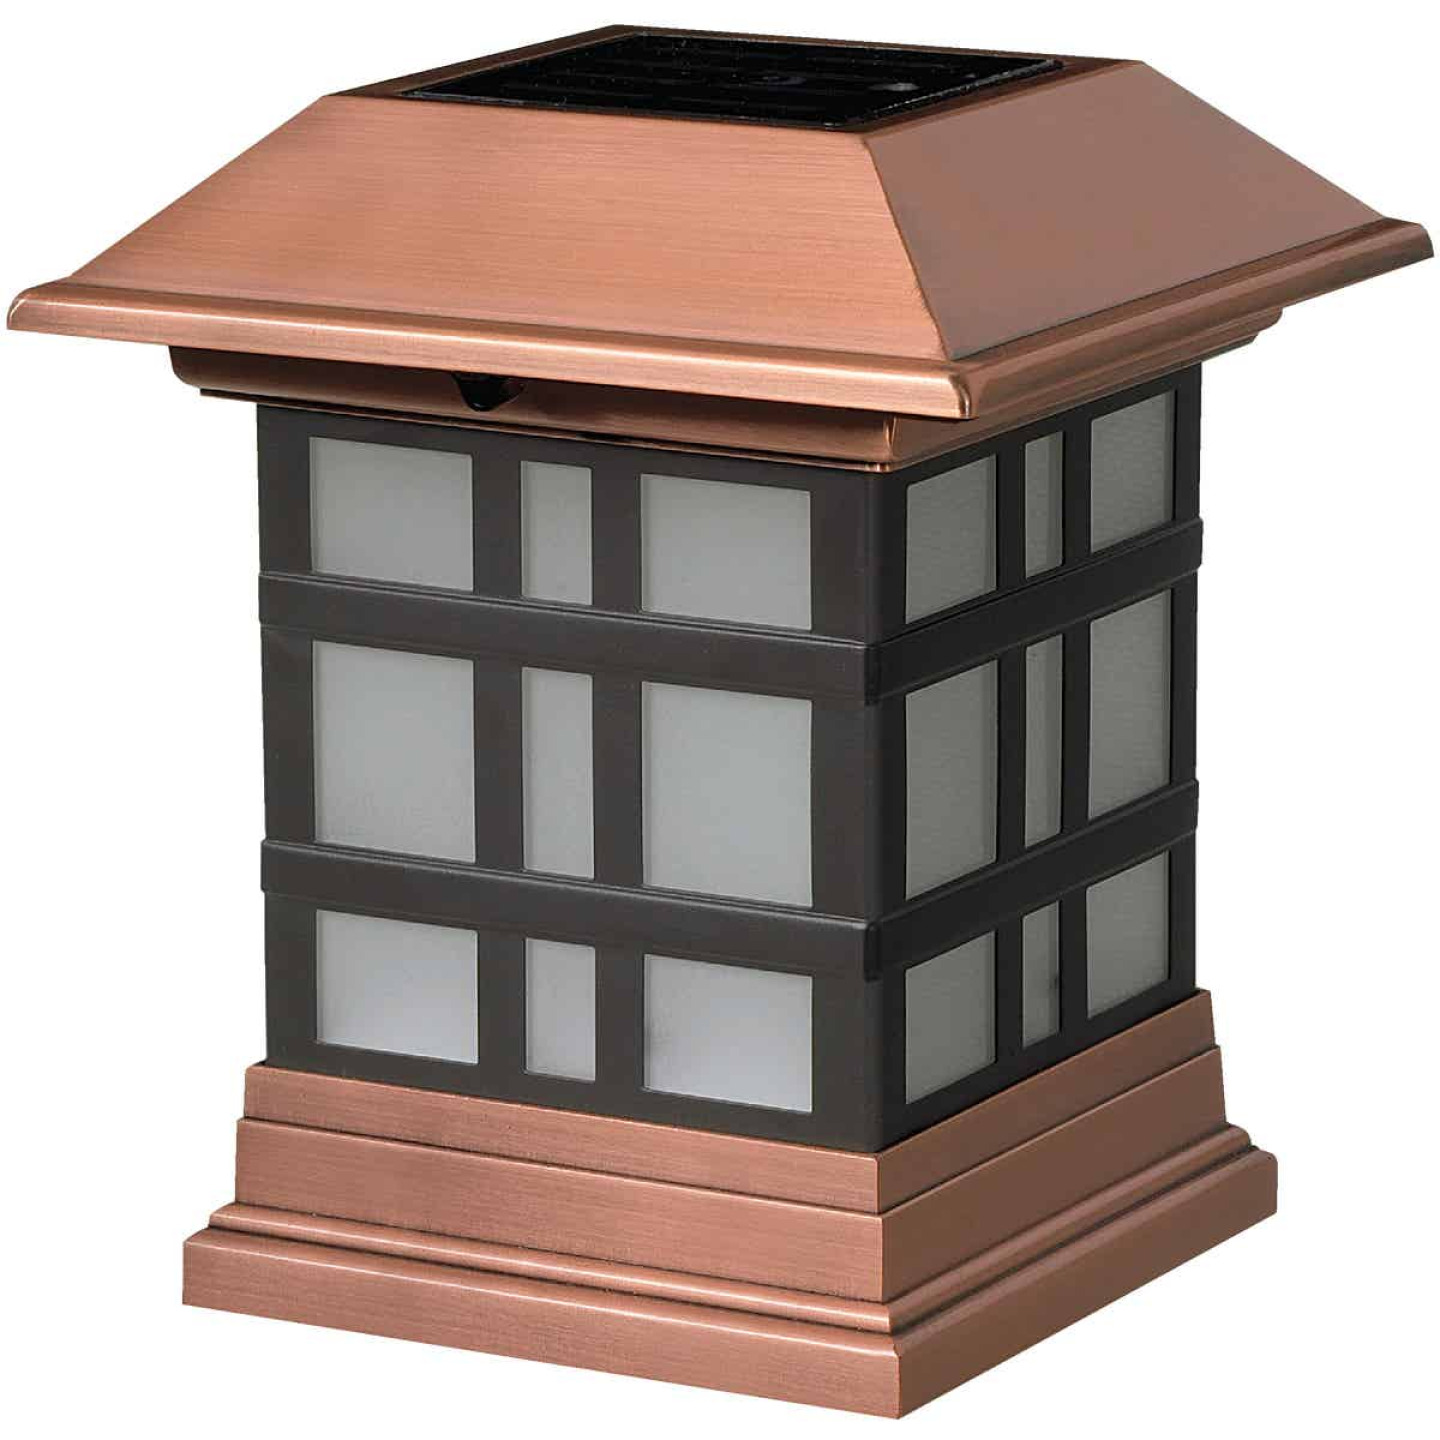 Deckorators 4 In. x 4 In. Dynasty Copper Designer Solar Post Cap Image 1